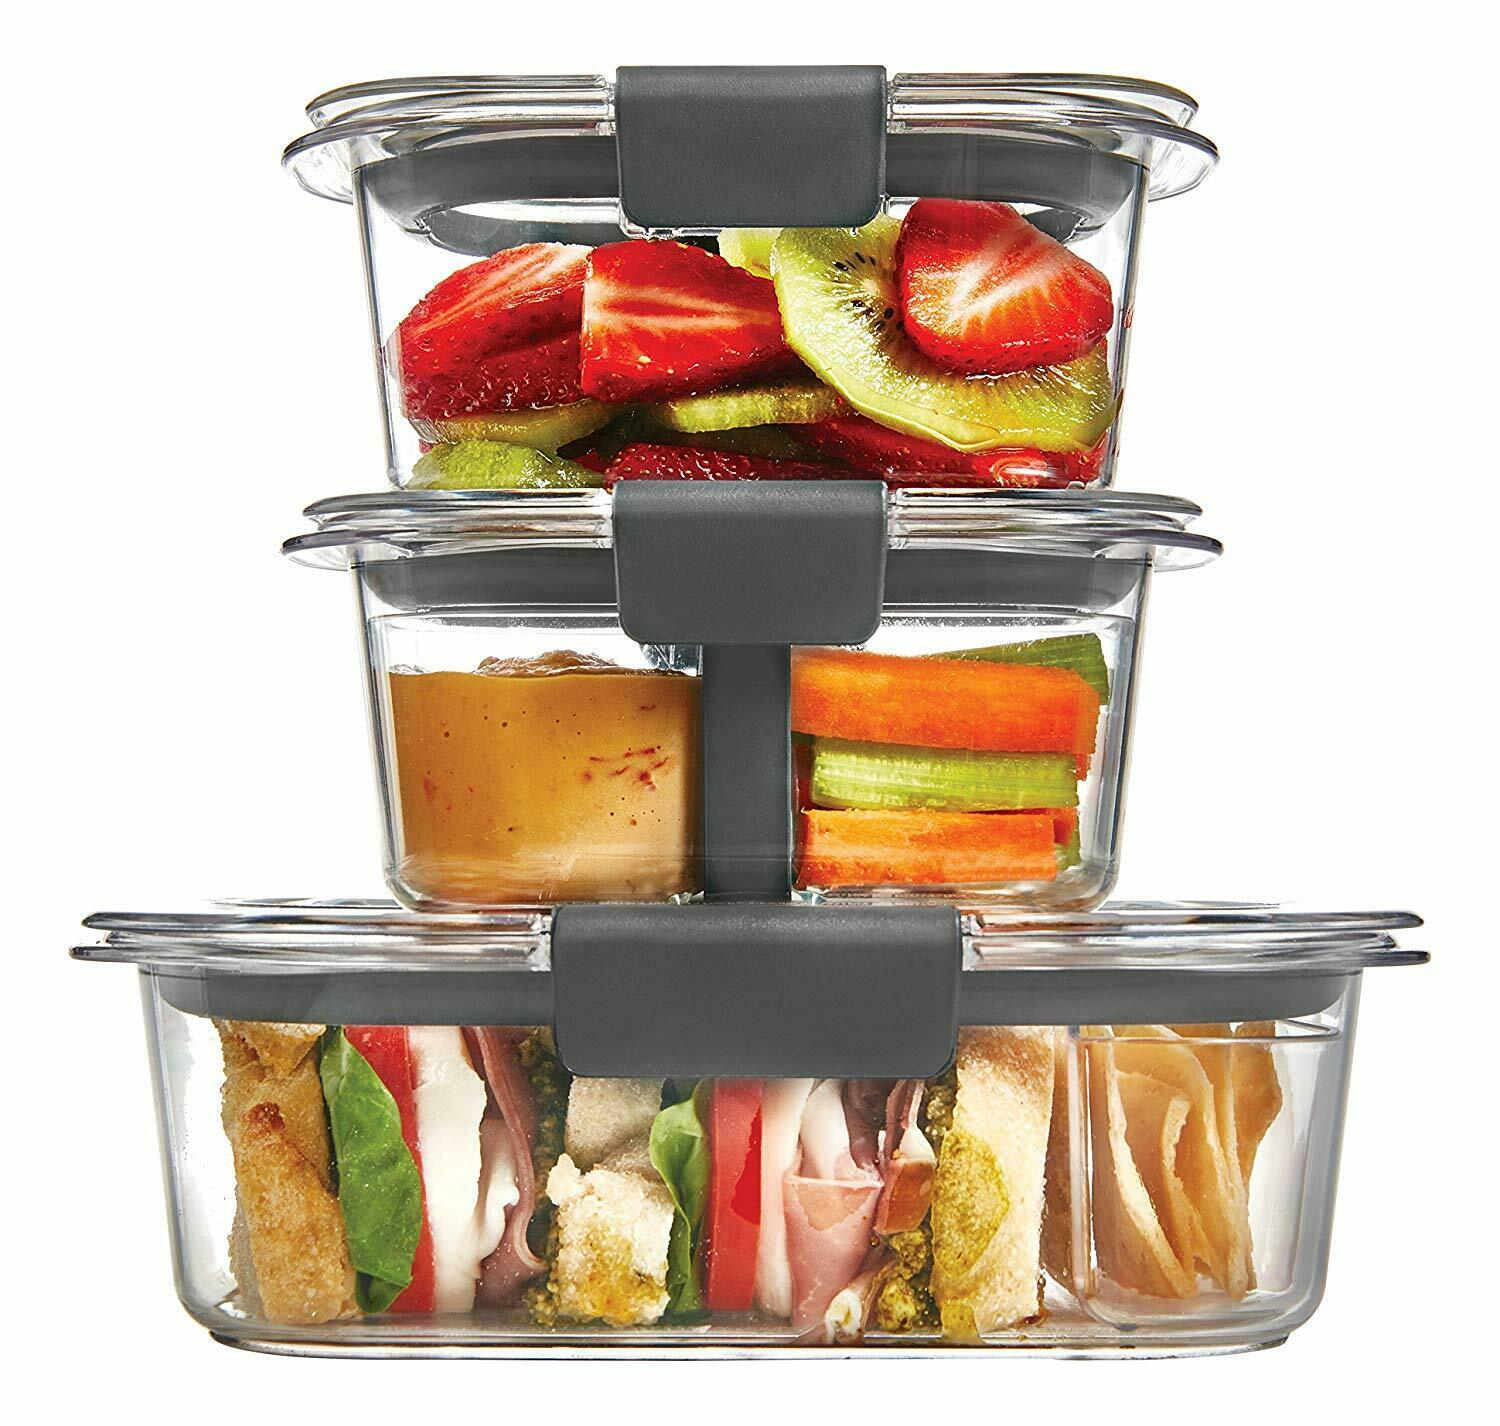 Rubbermaid Brilliance Food Storage Container Lunch Kit Clear 10-Piece Set 1